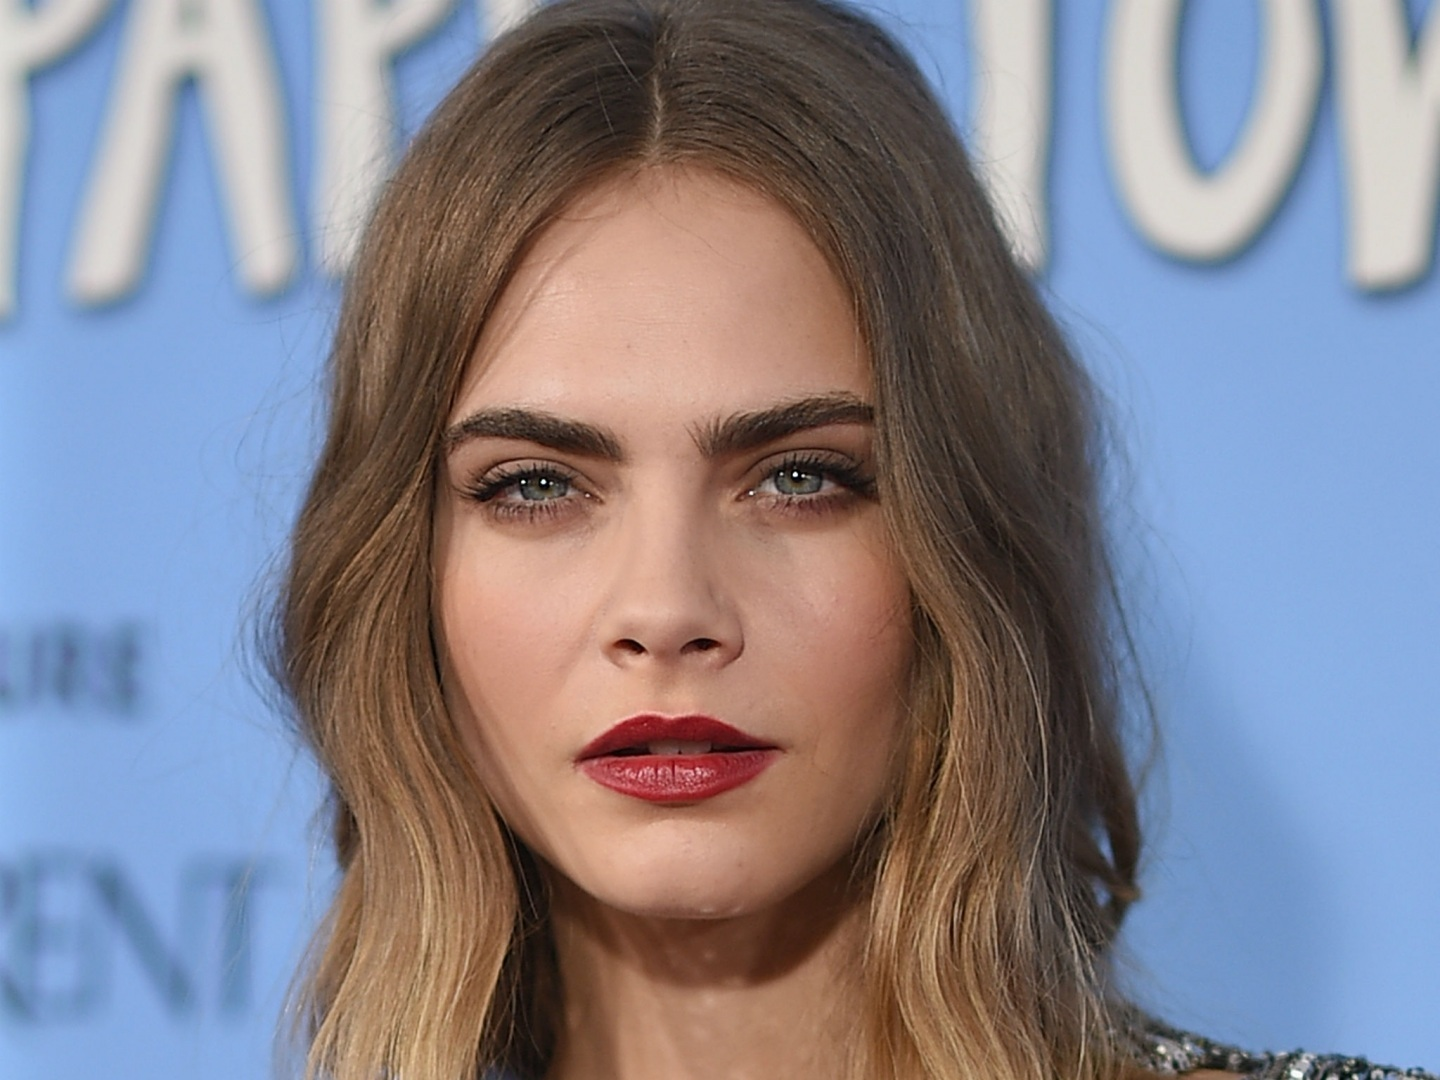 Cara Delevingne Net Worth Height Weight Body Measurements Cara Delevingne